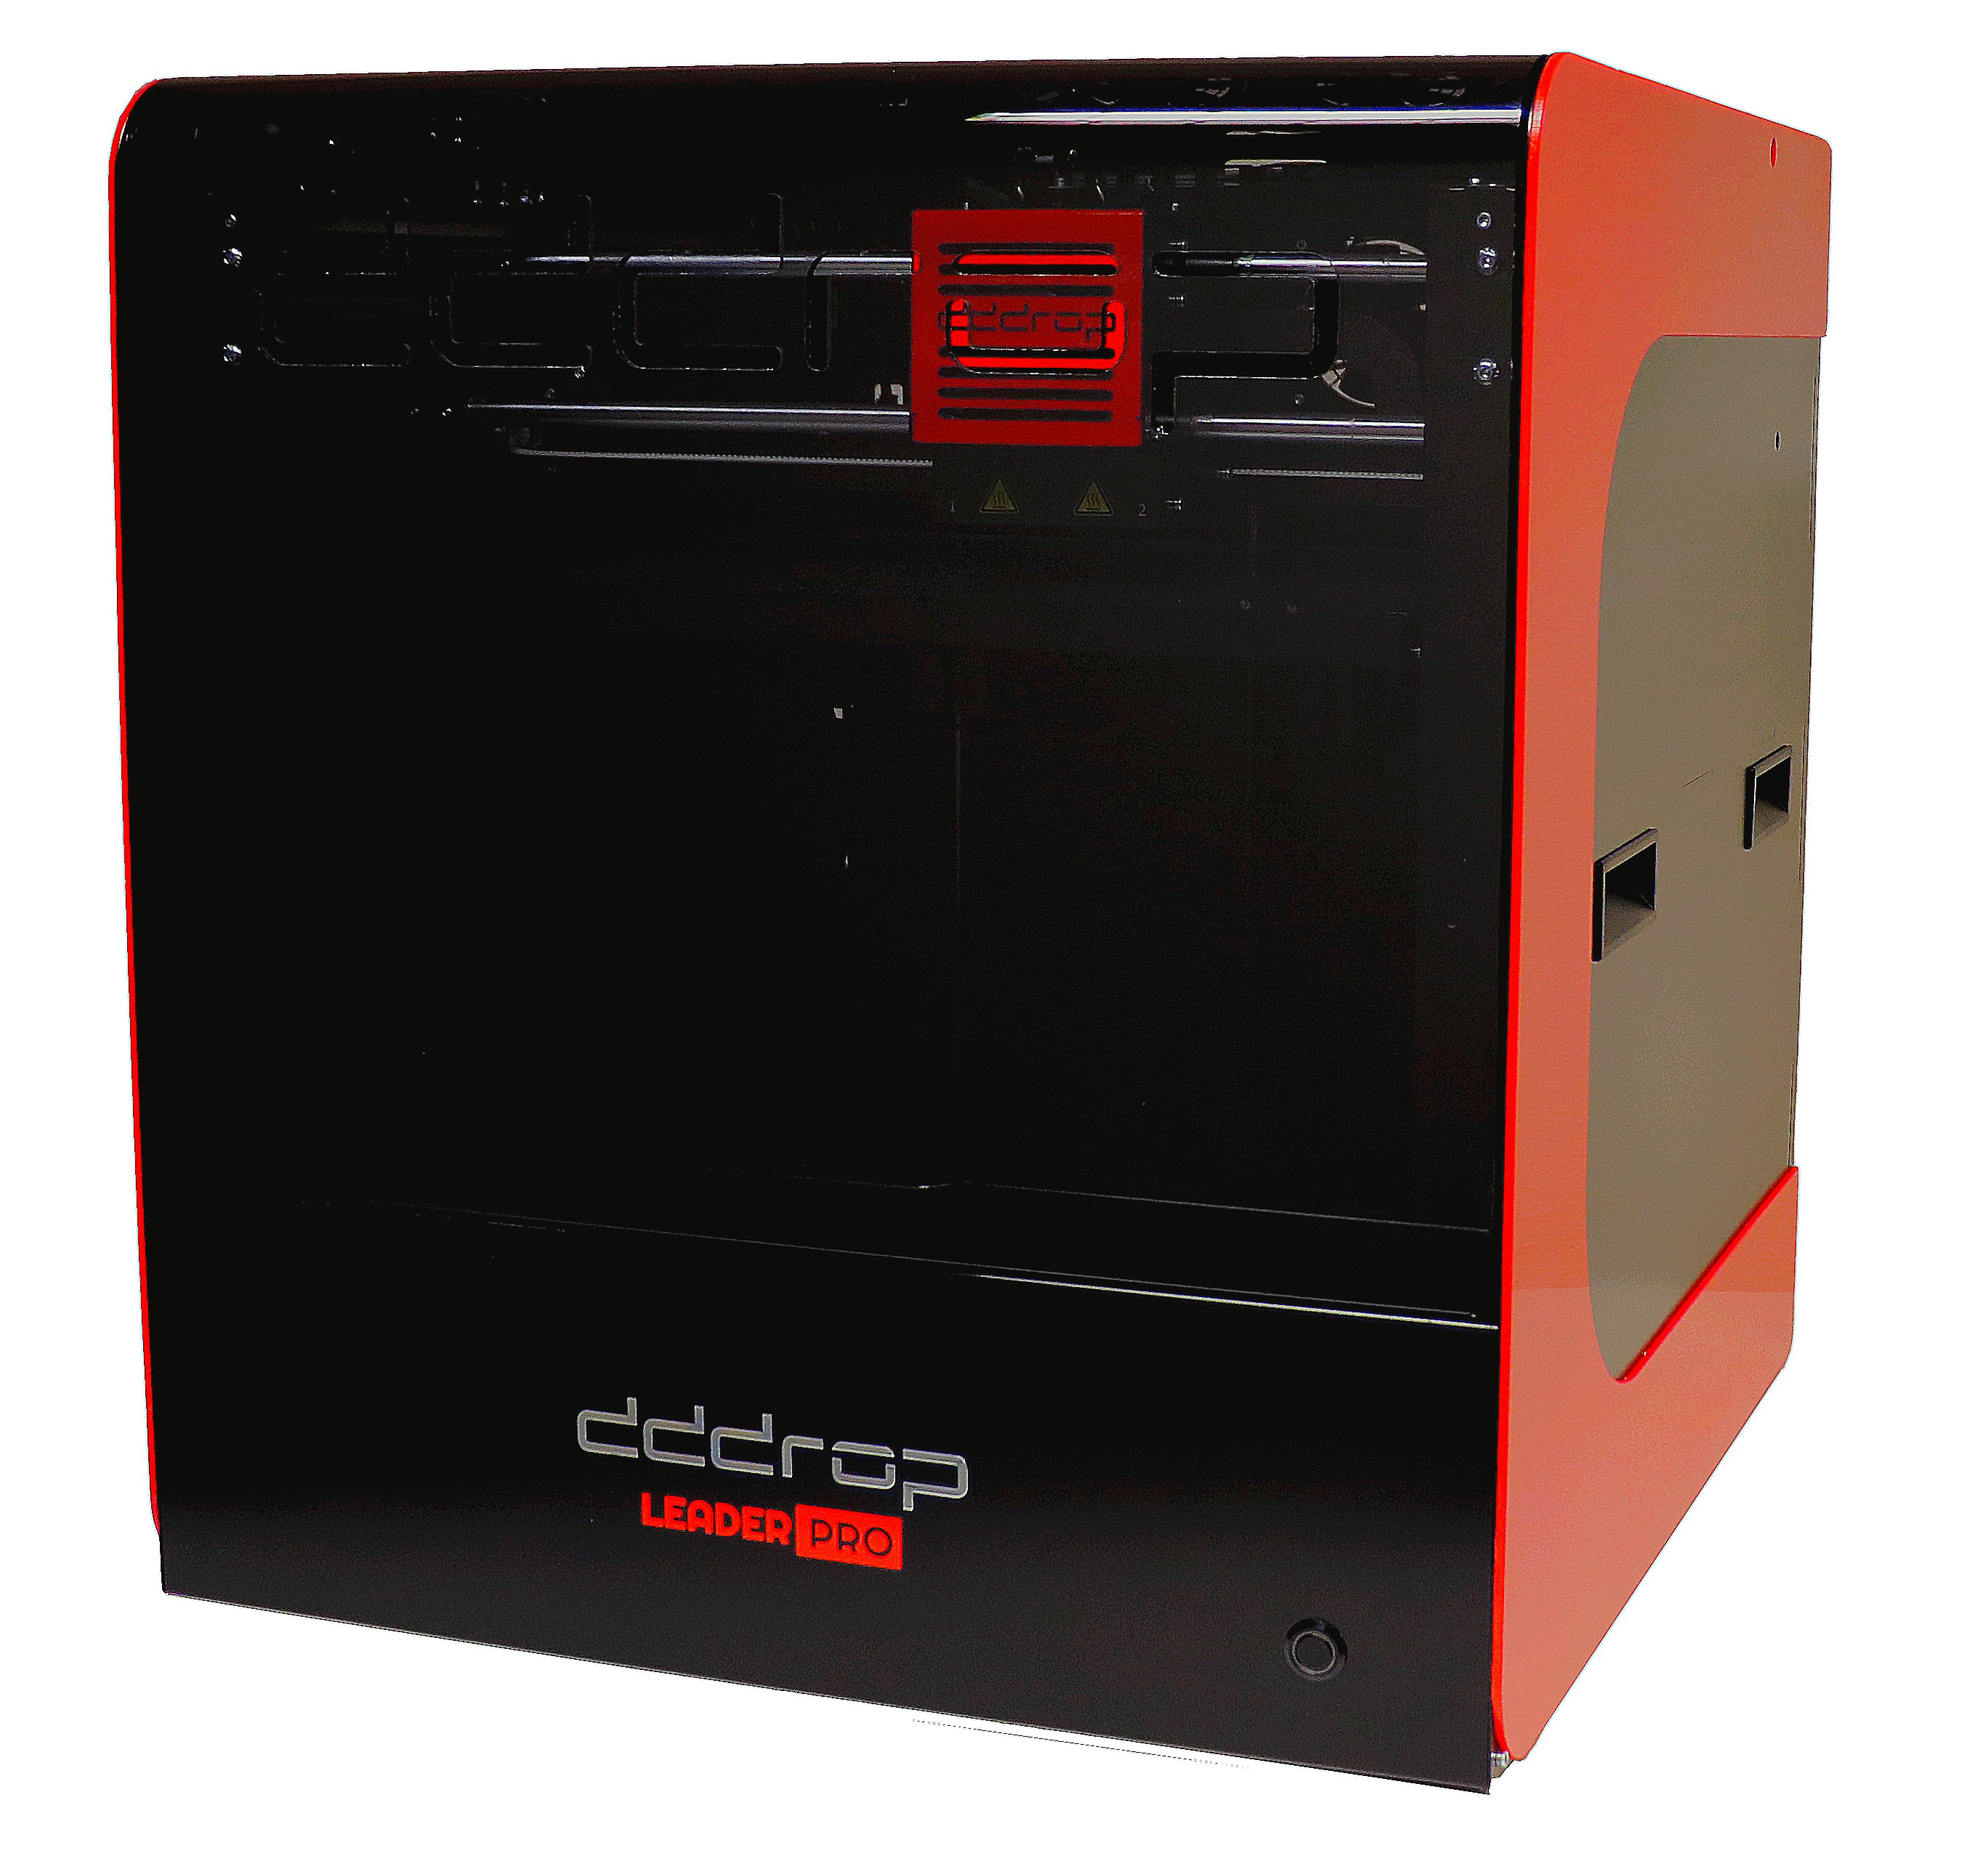 dddrop leader 3d printer